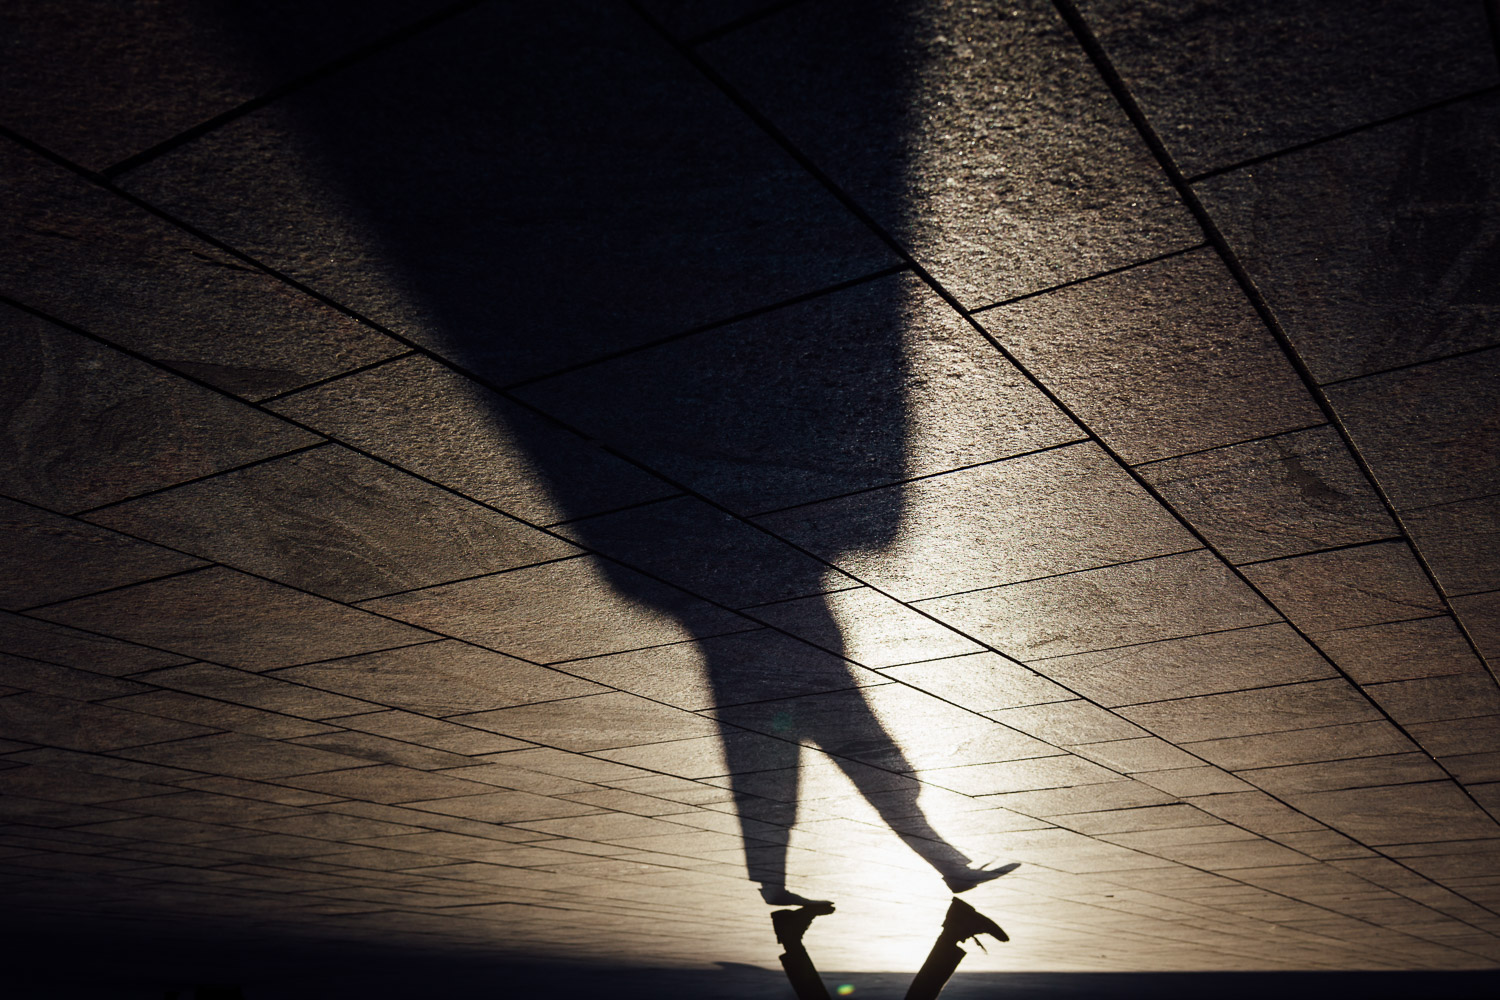 Shadow-Silhouette-Walking-Durazo-Photography-Project-Travel-Street